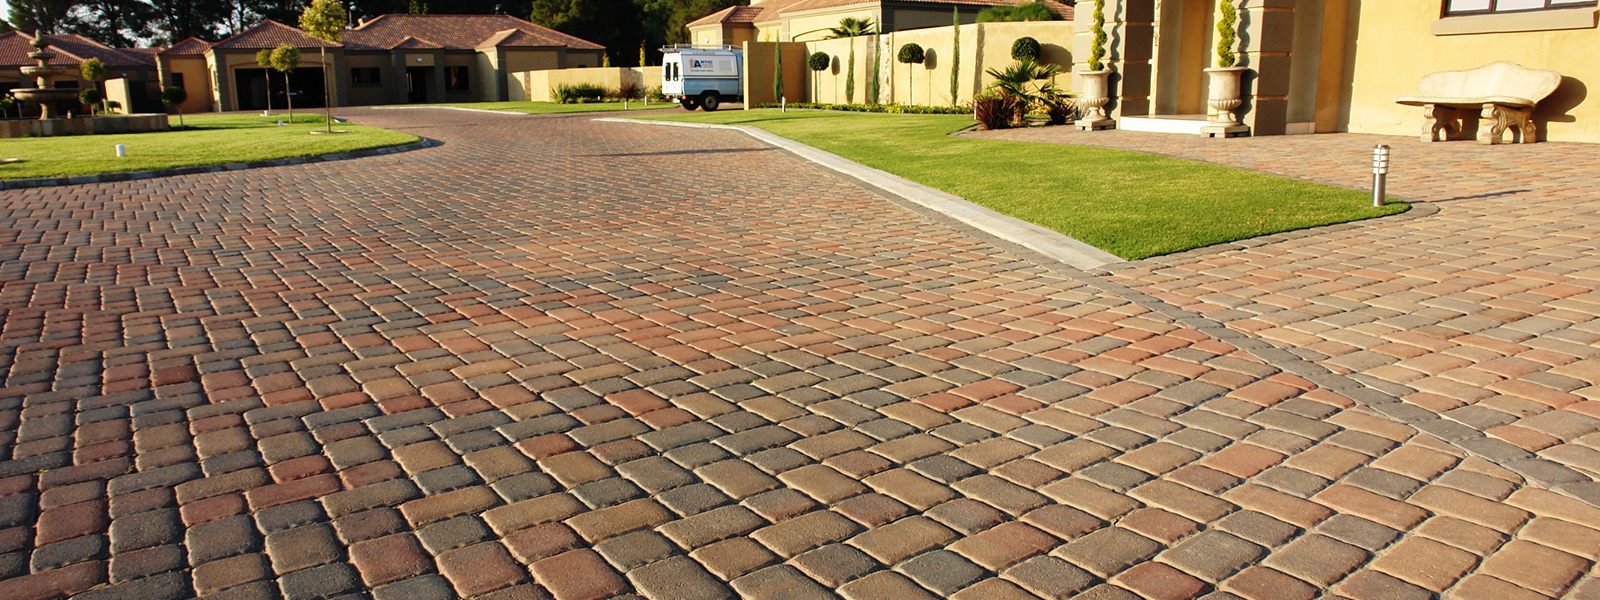 Our Paving